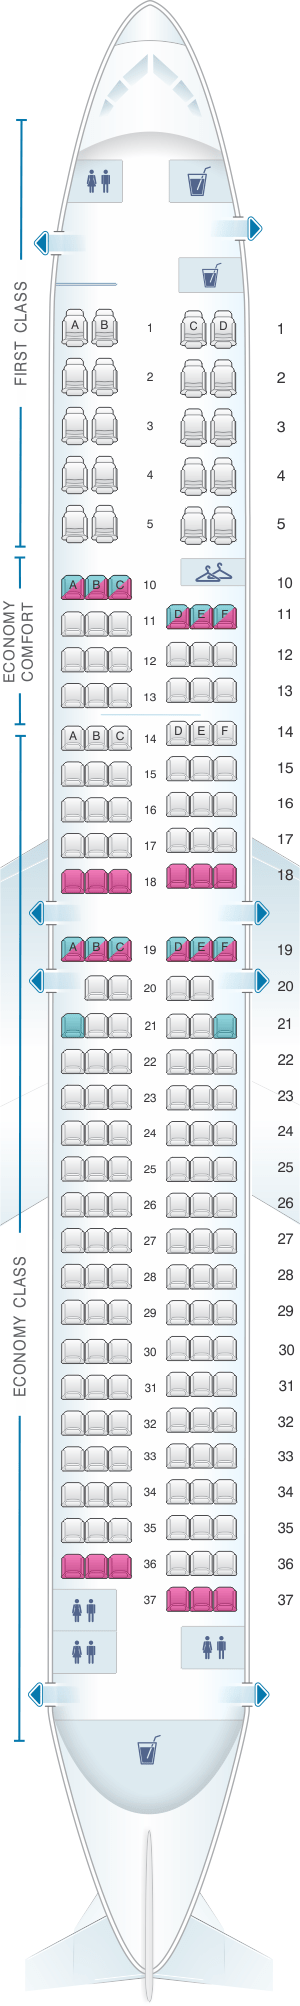 Seat Map For Delta Air Lines Boeing B737 900er 739